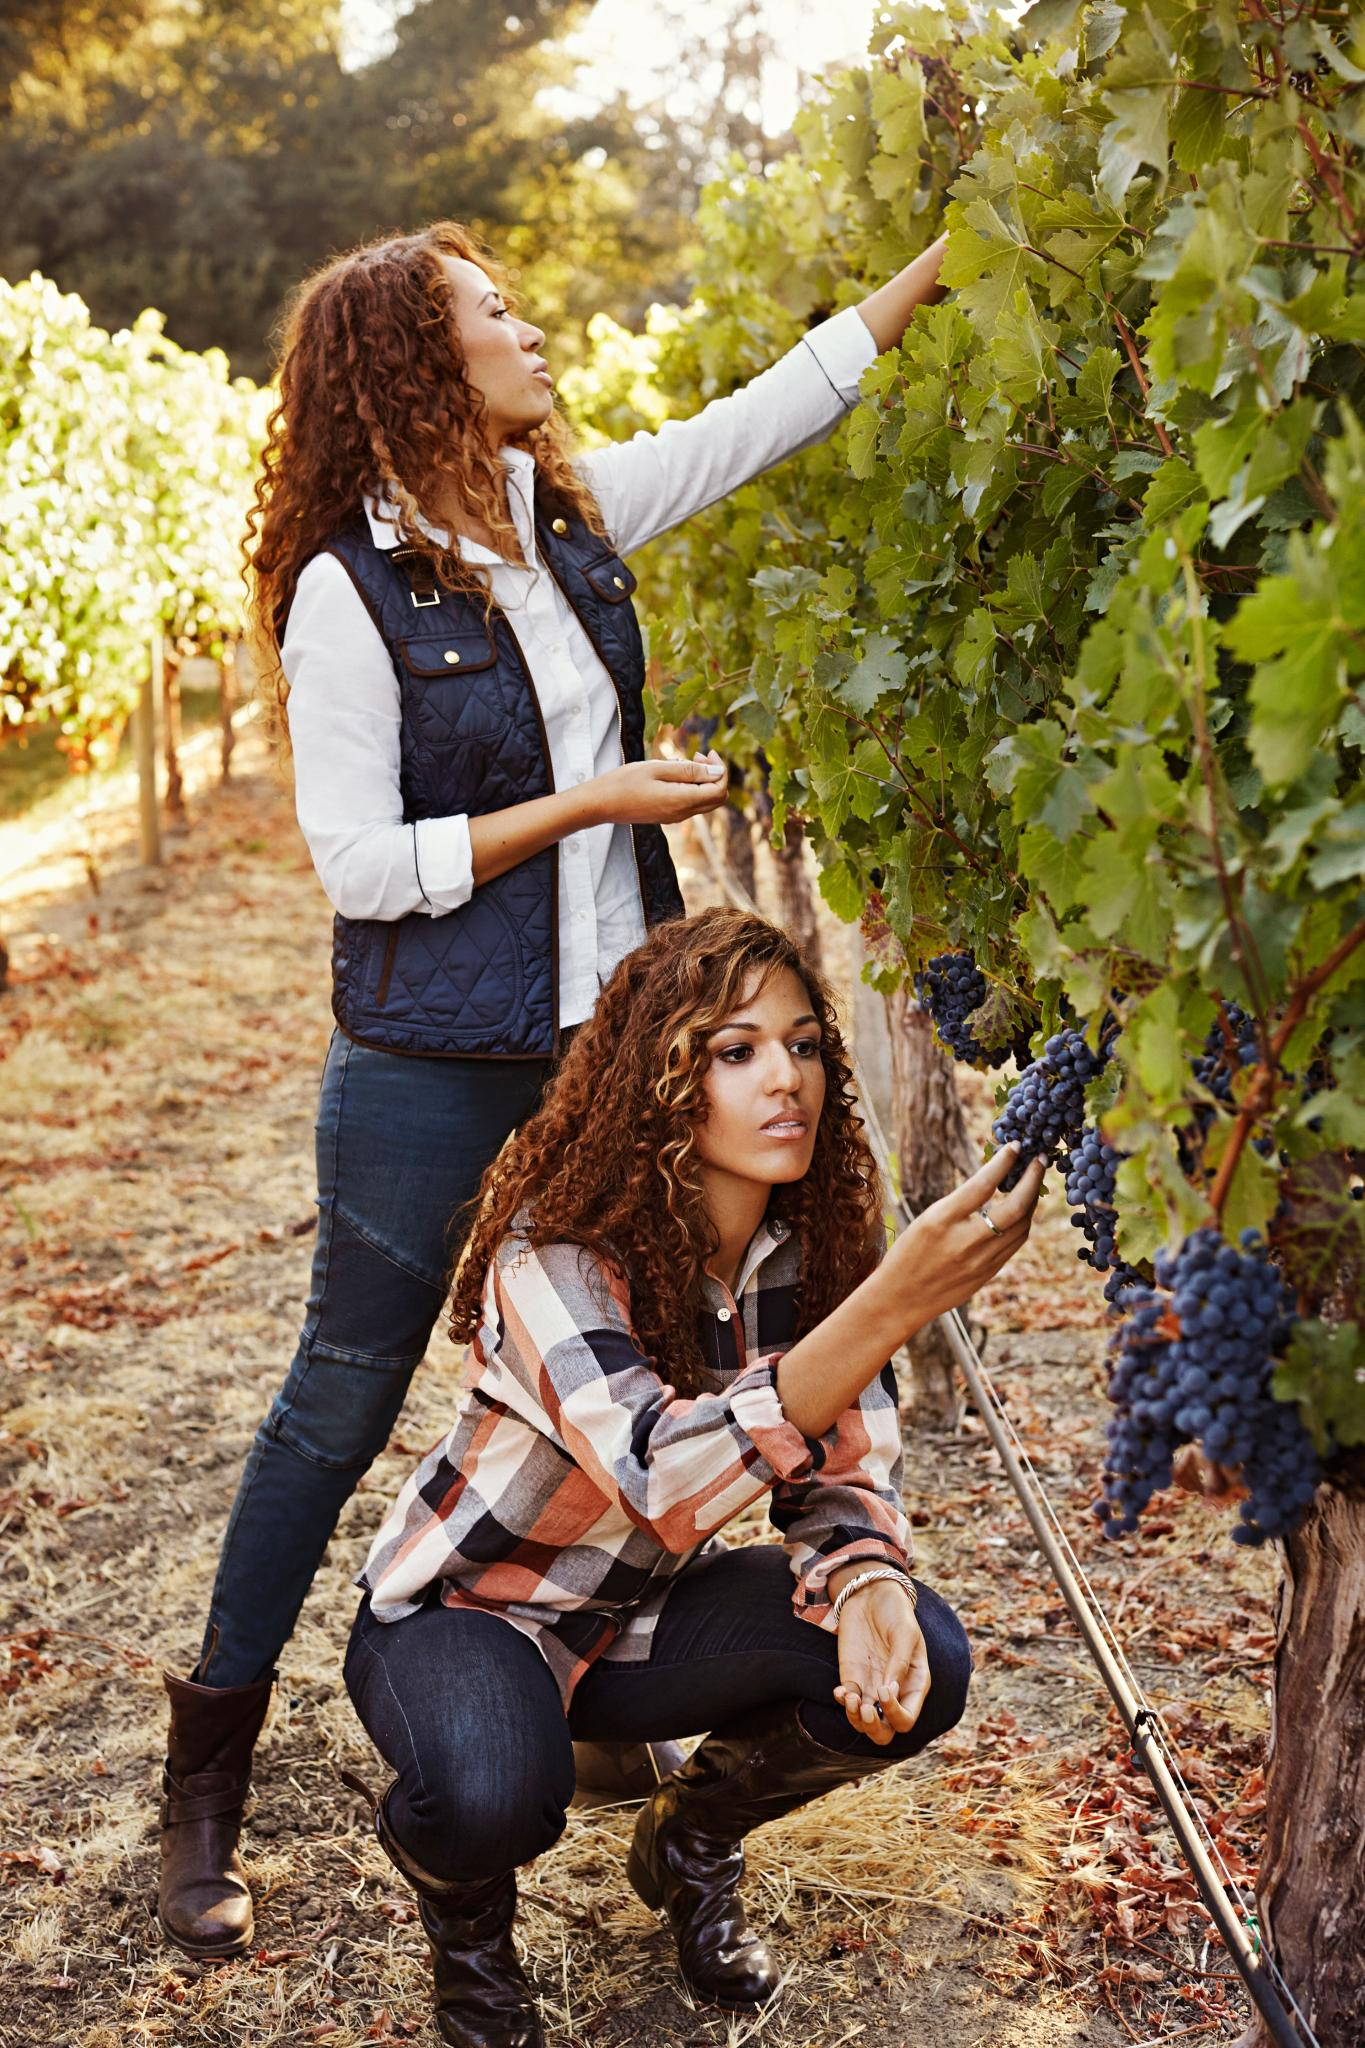 Toast To Sisterhood: How These Sisters Turned A Shared Passion Into Profit